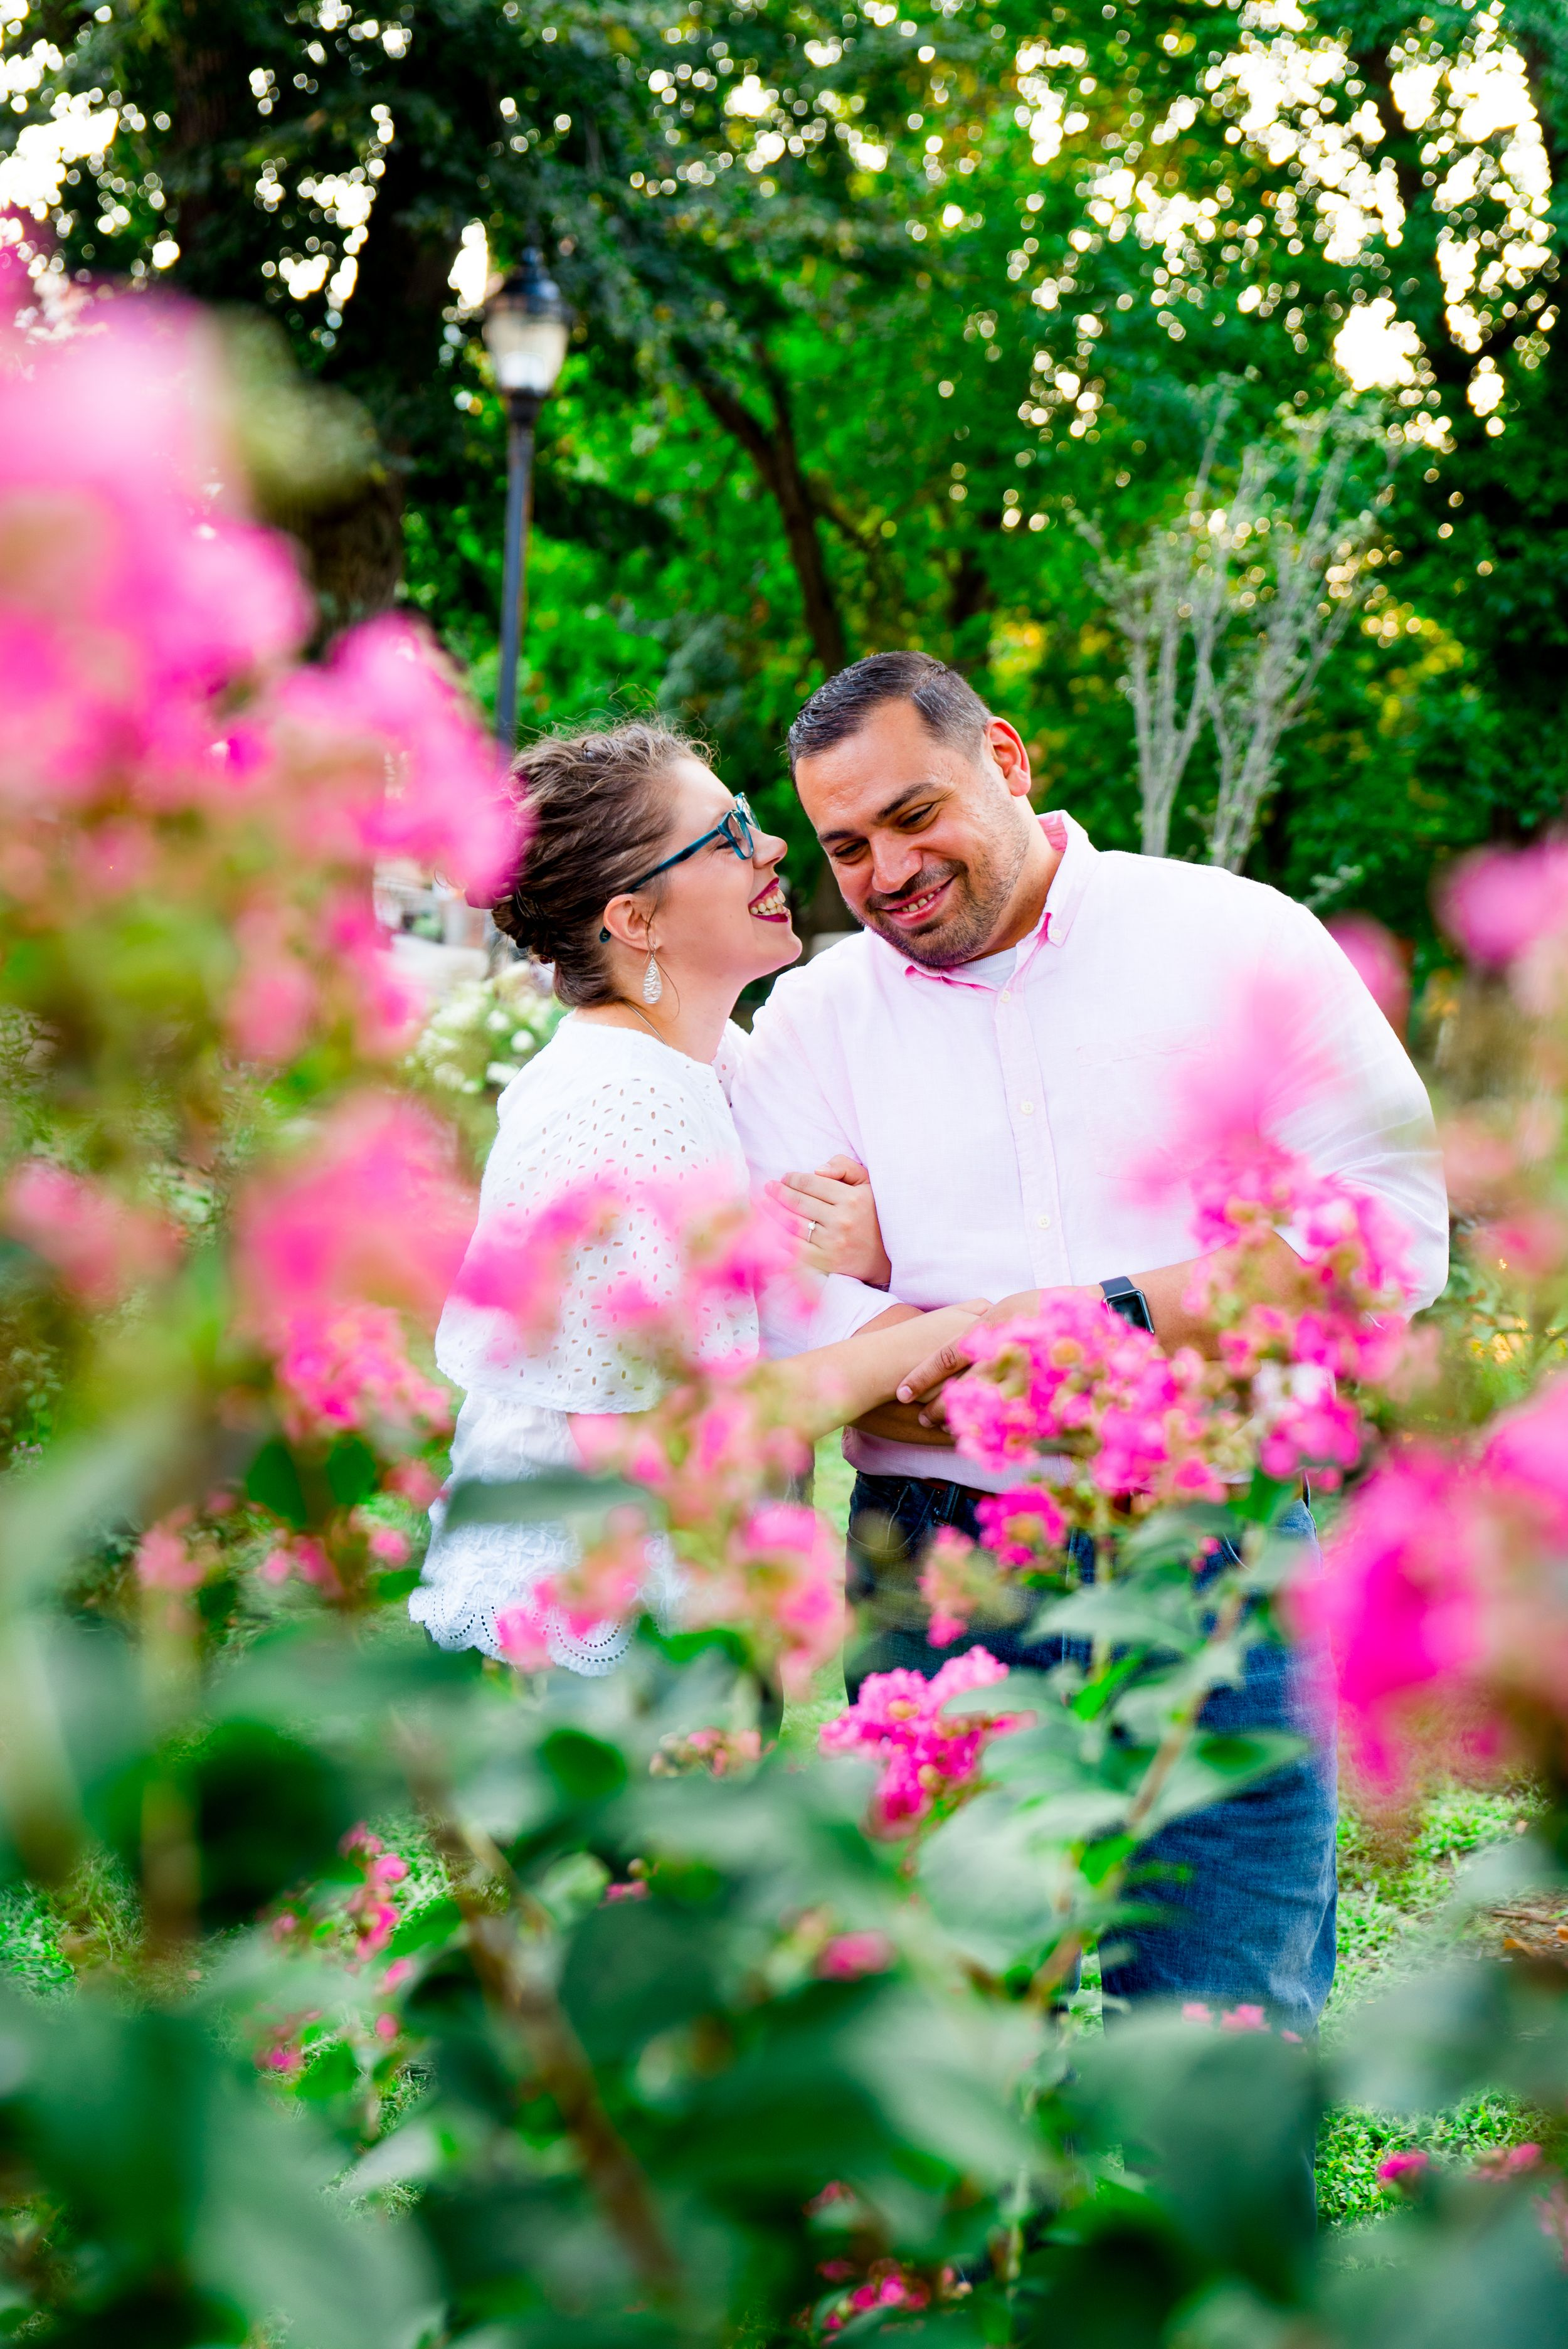 woman in white shirt and red lipstick pulls fiance in close to whisper in his ear and laughs behind a pink flower bush